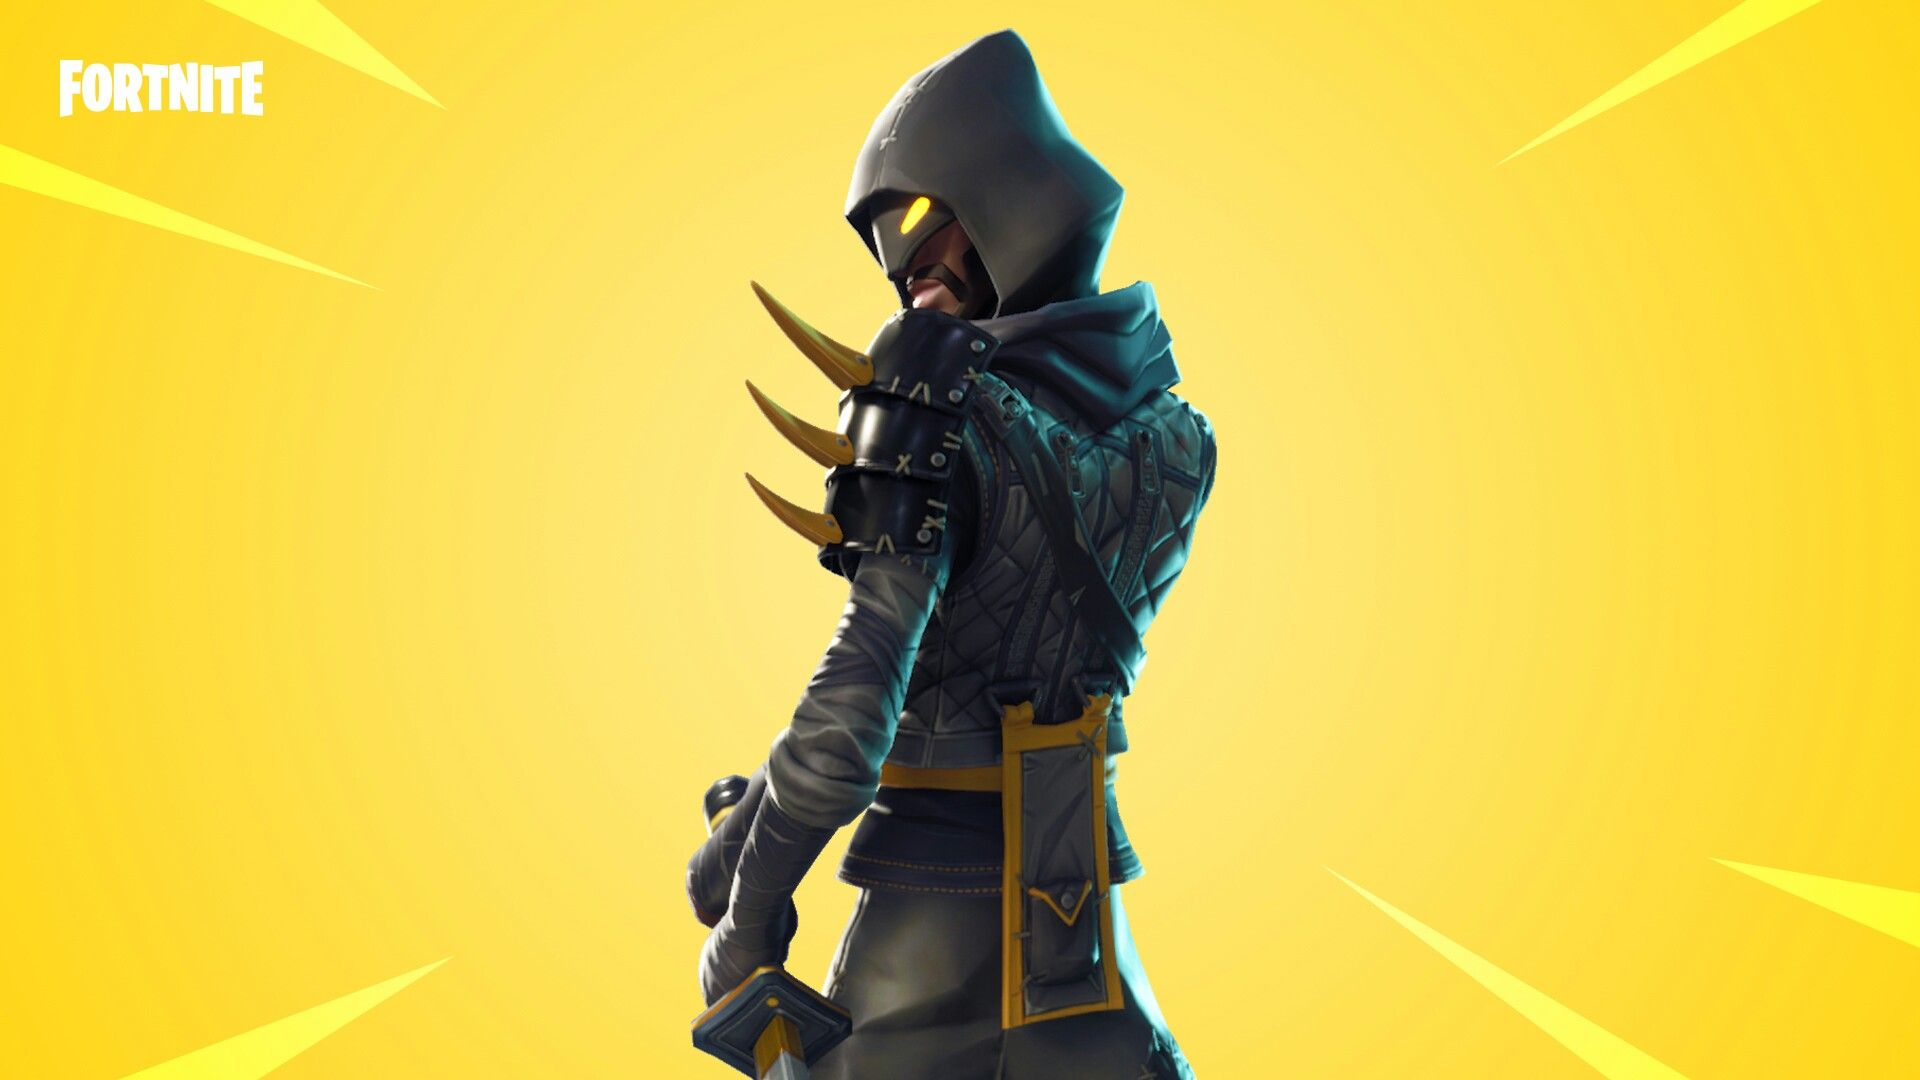 Pin By Destiny Orosco On Fortnite With Images